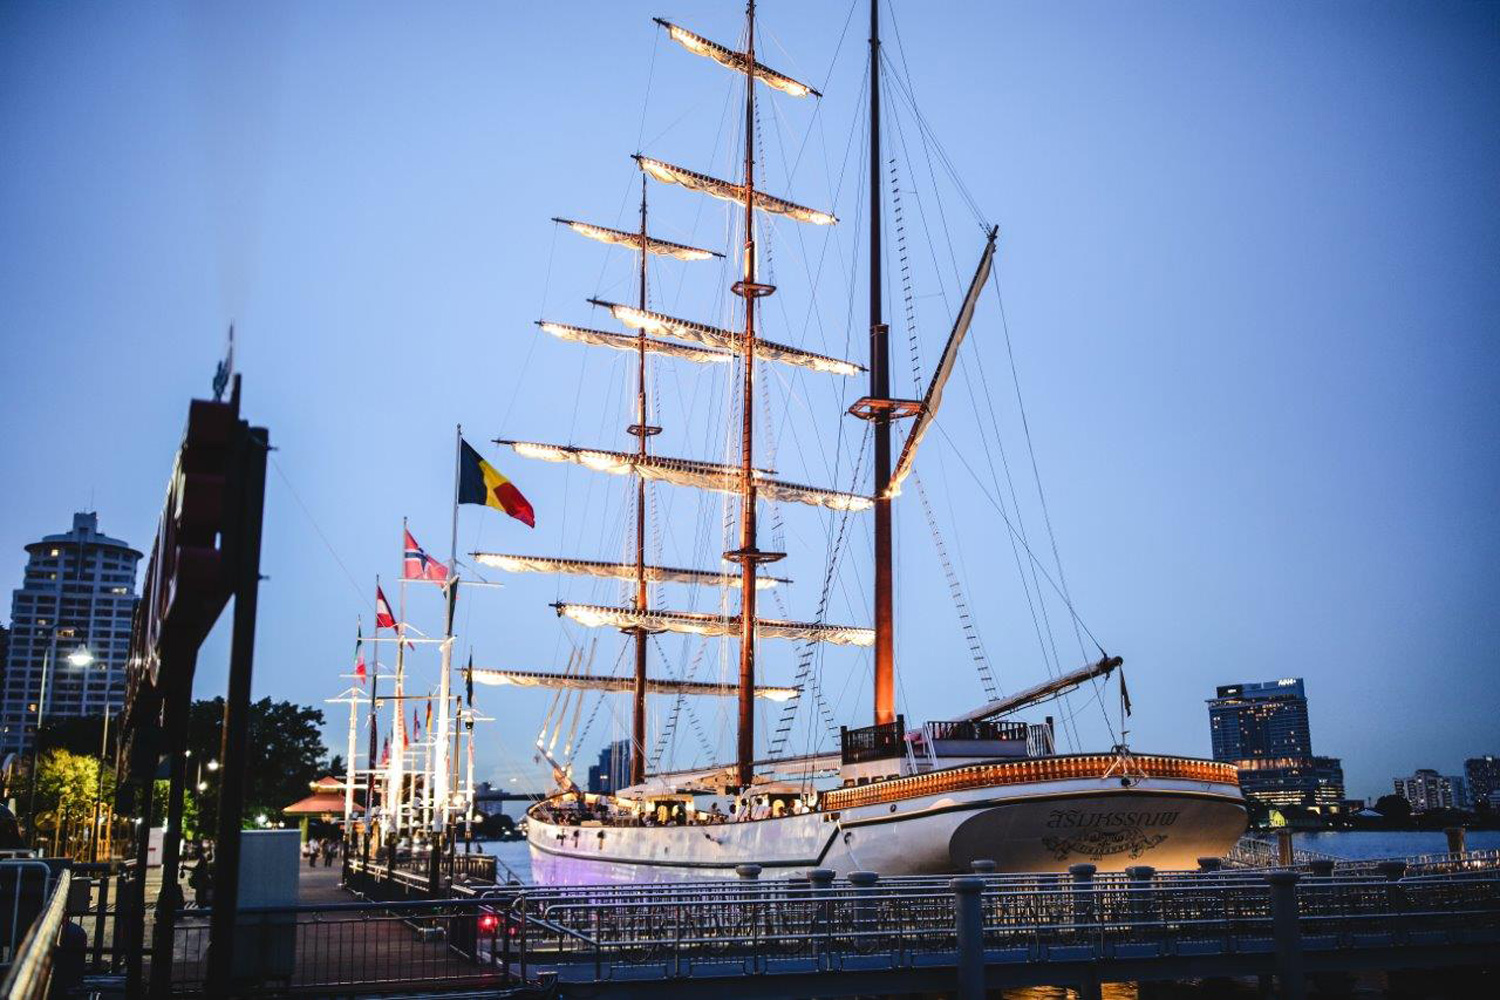 Bangkok Marriott Marquis Queen's Park launches Sirimahannop, the largest three-masted vessel in Thailand